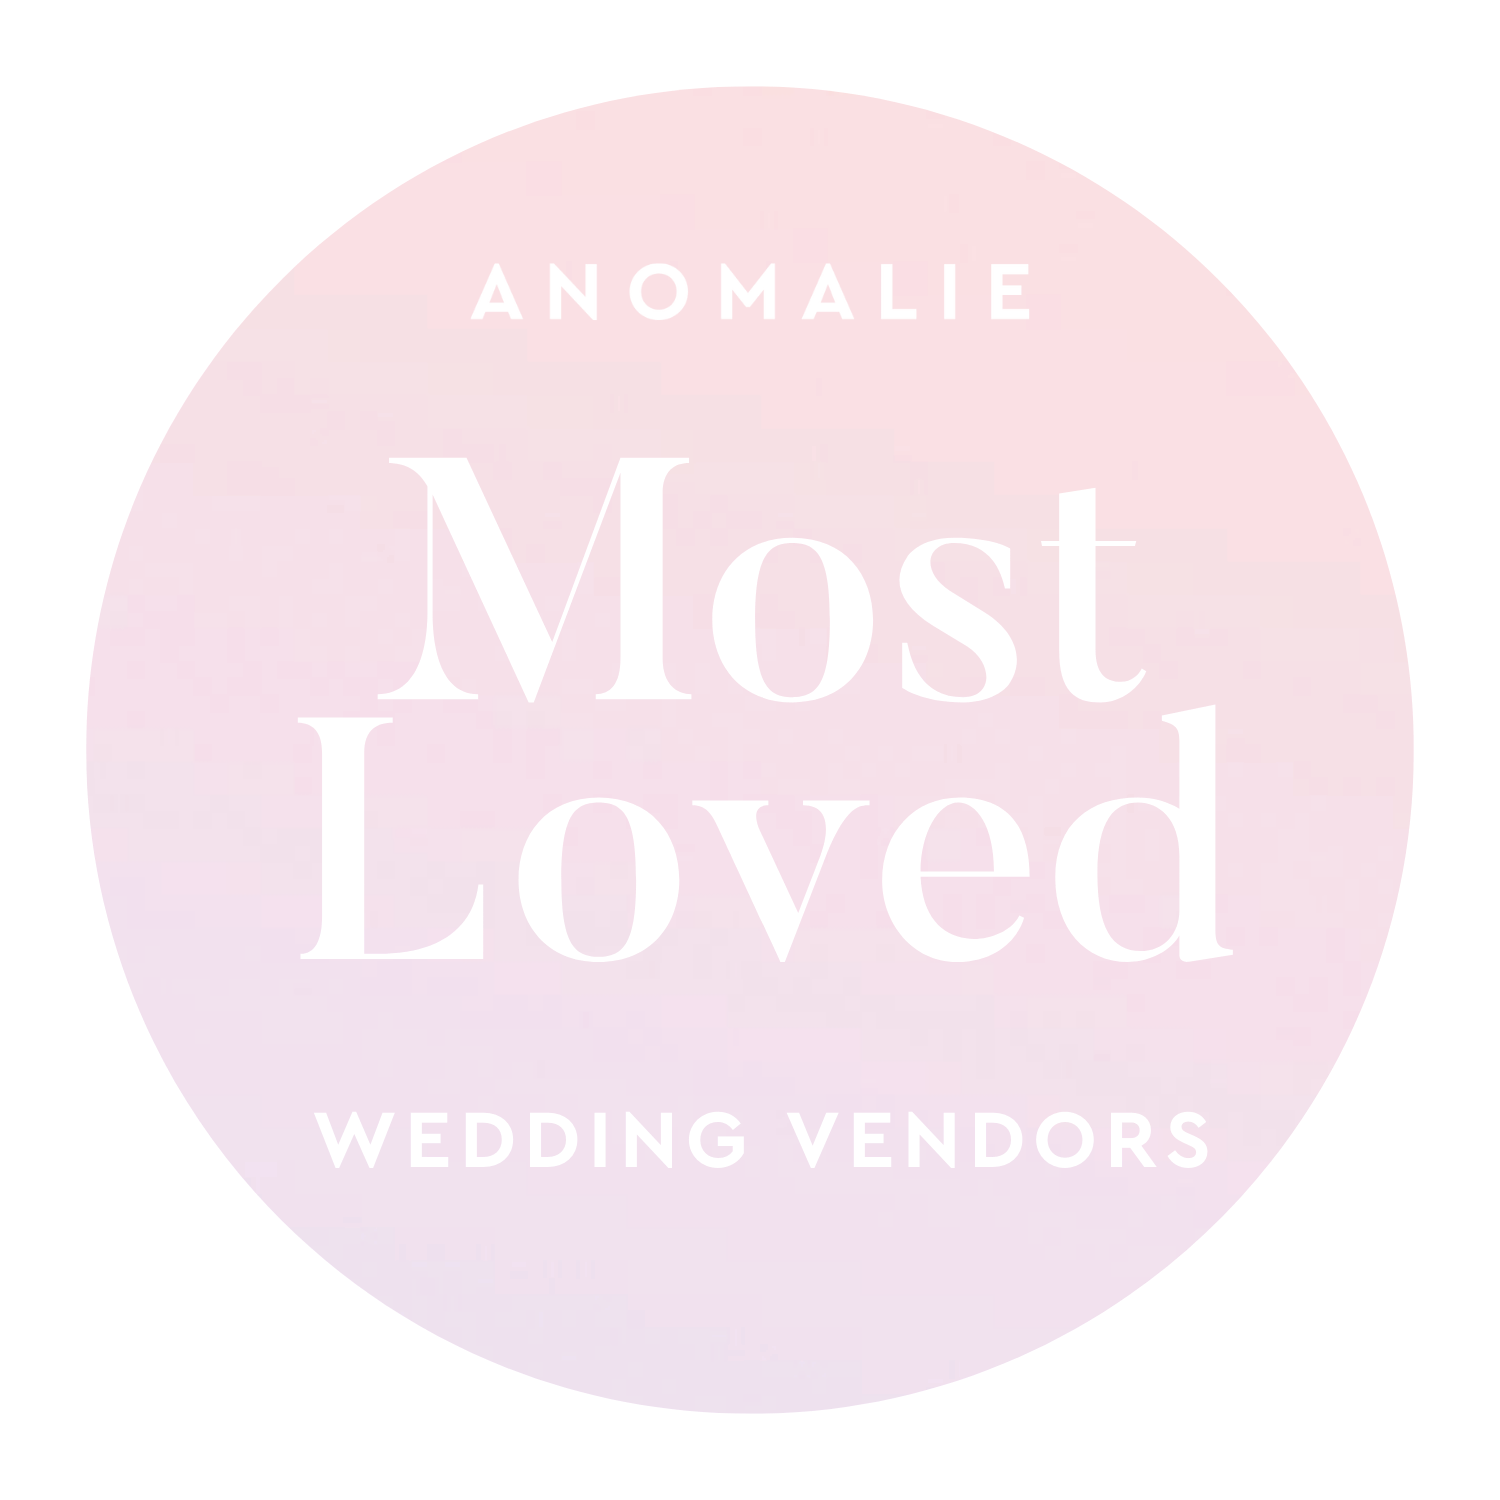 Anomalie Most Loved Wedding Vendors